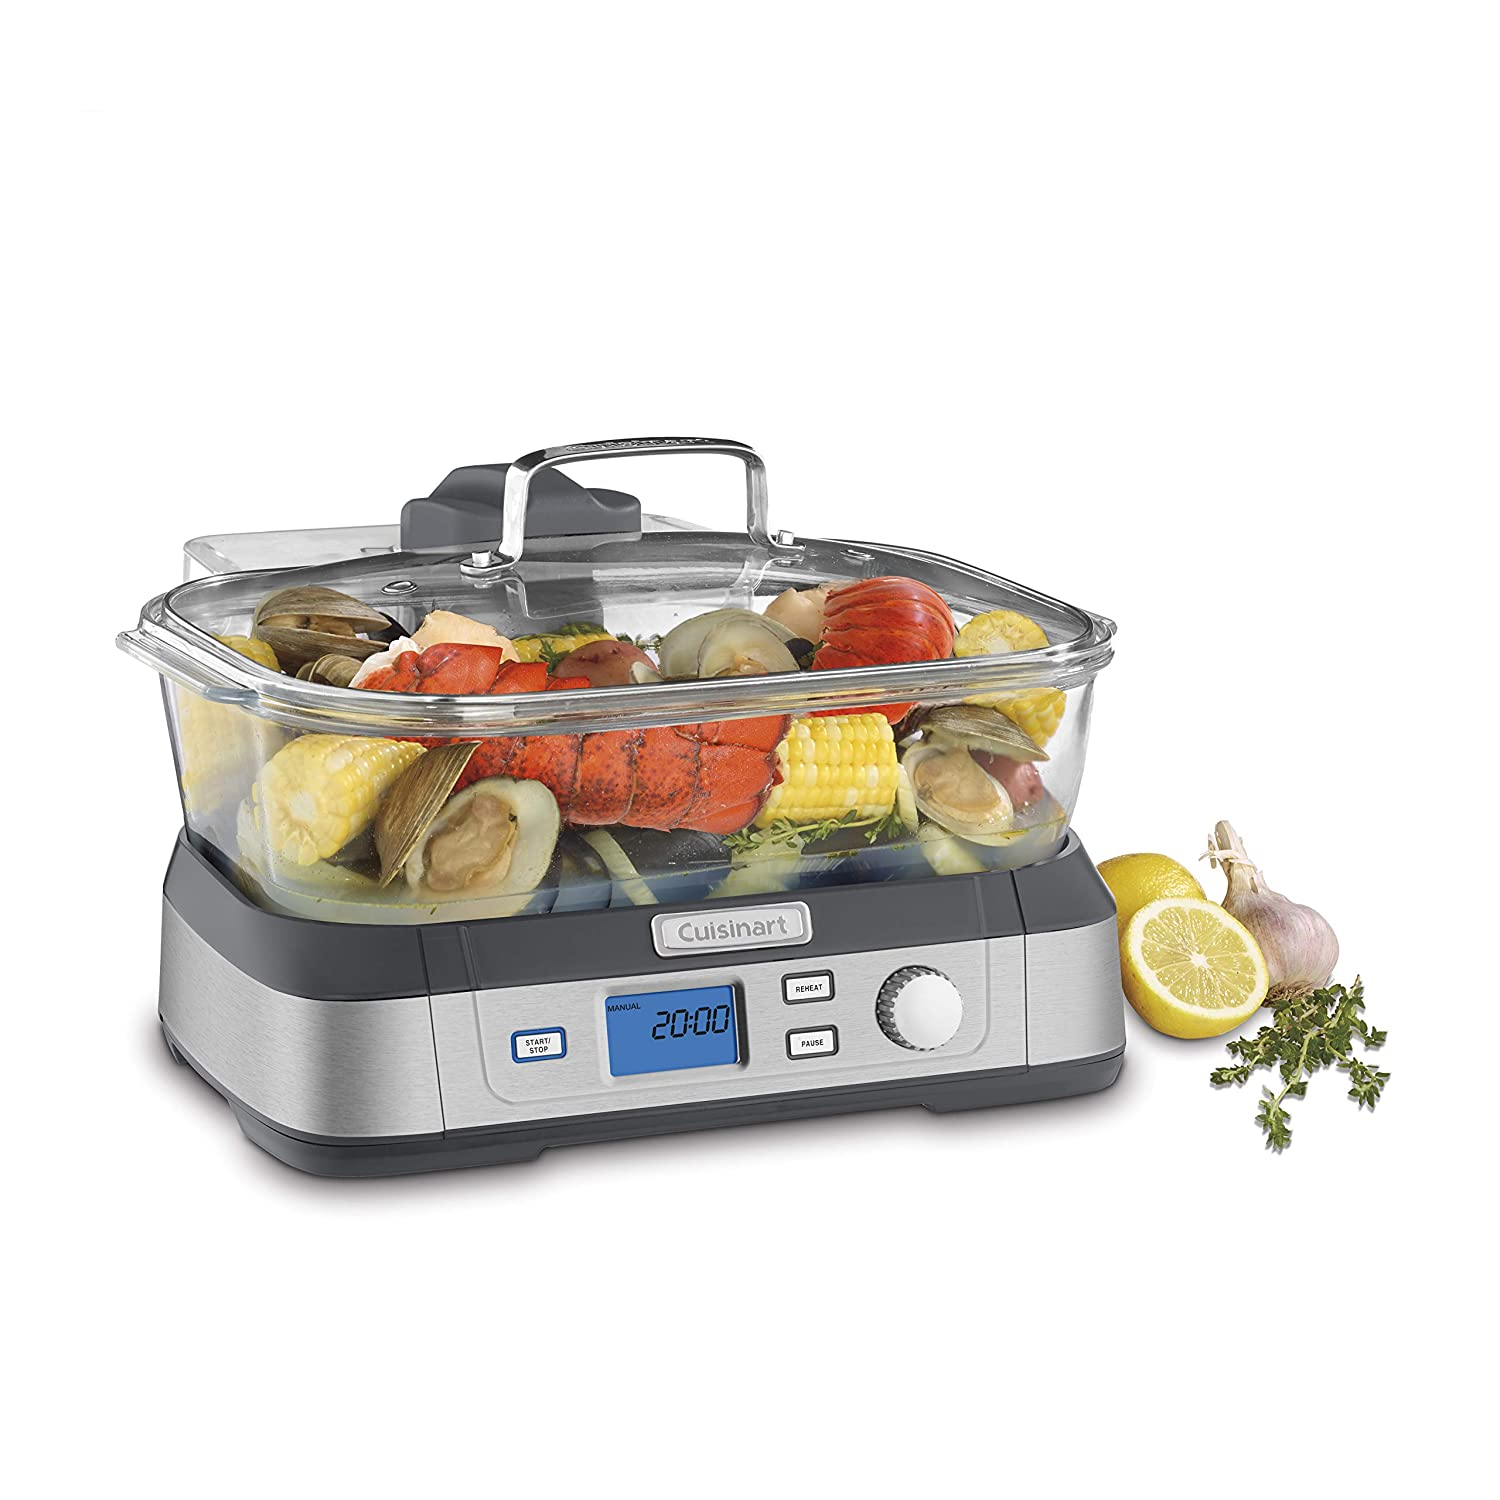 Cuisinart STM-1000 Digital Glass Steamer Stainless Steel